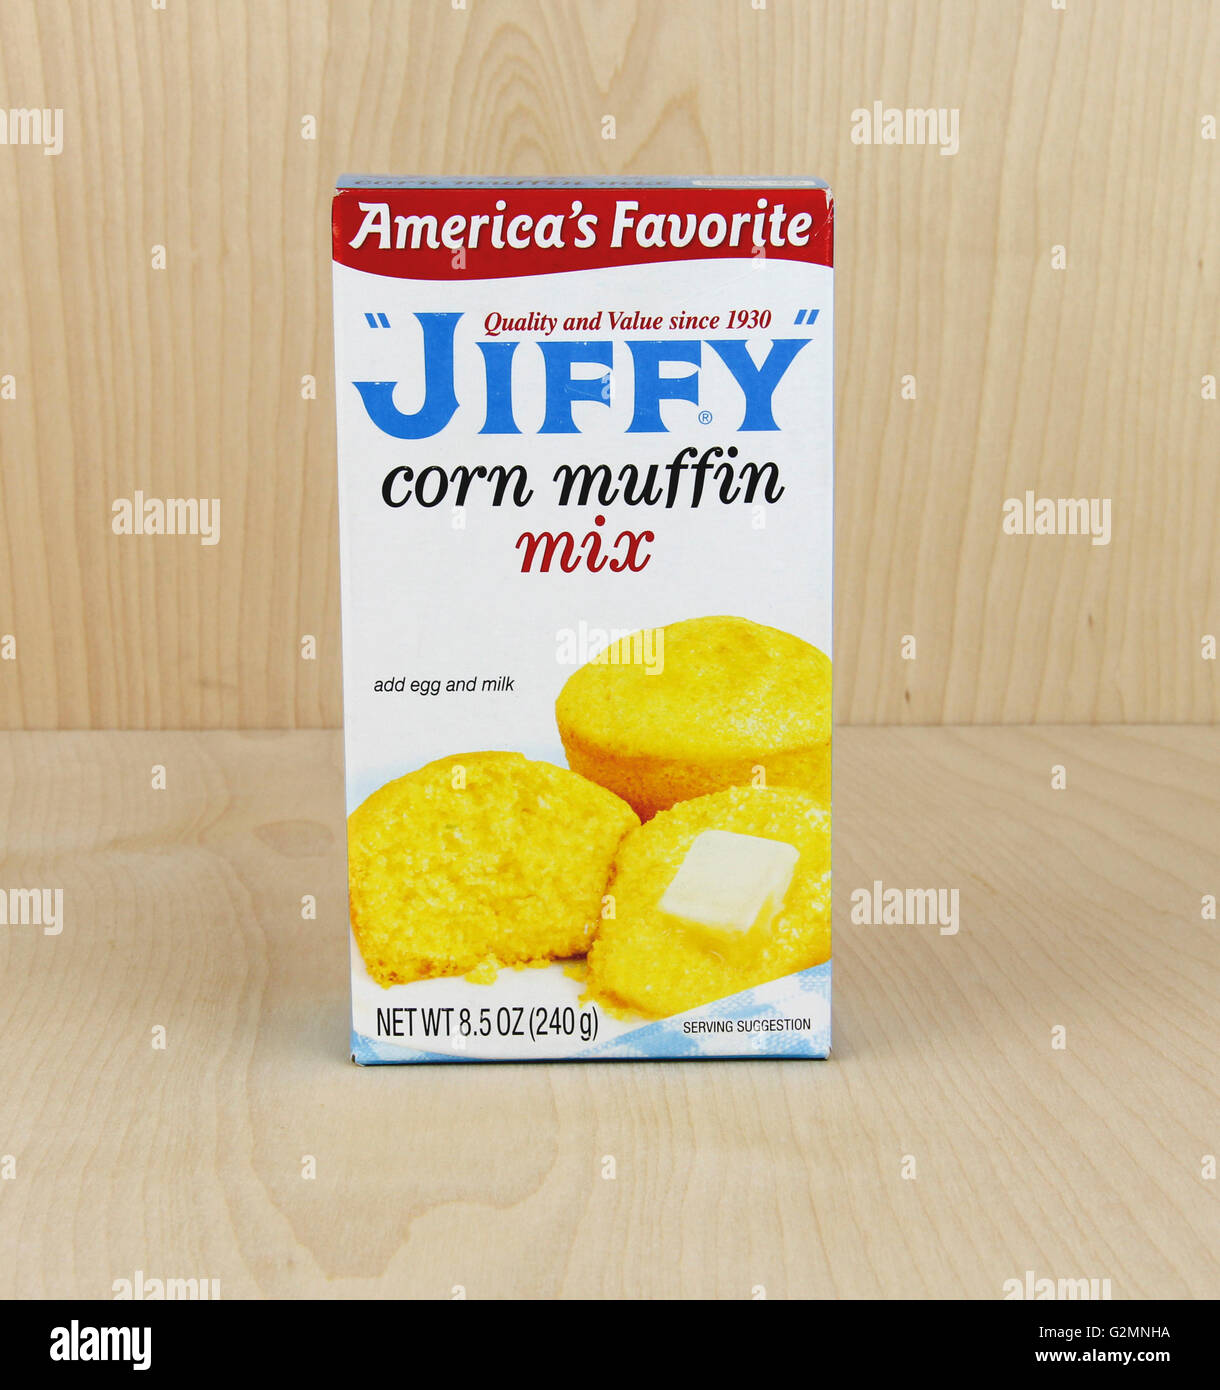 Spencer, Wisconsin, June, 1, 2016  Box of Jiffy Corn Muffin Mix     Jiffy is a brand of baking mixes marketed by - Stock Image